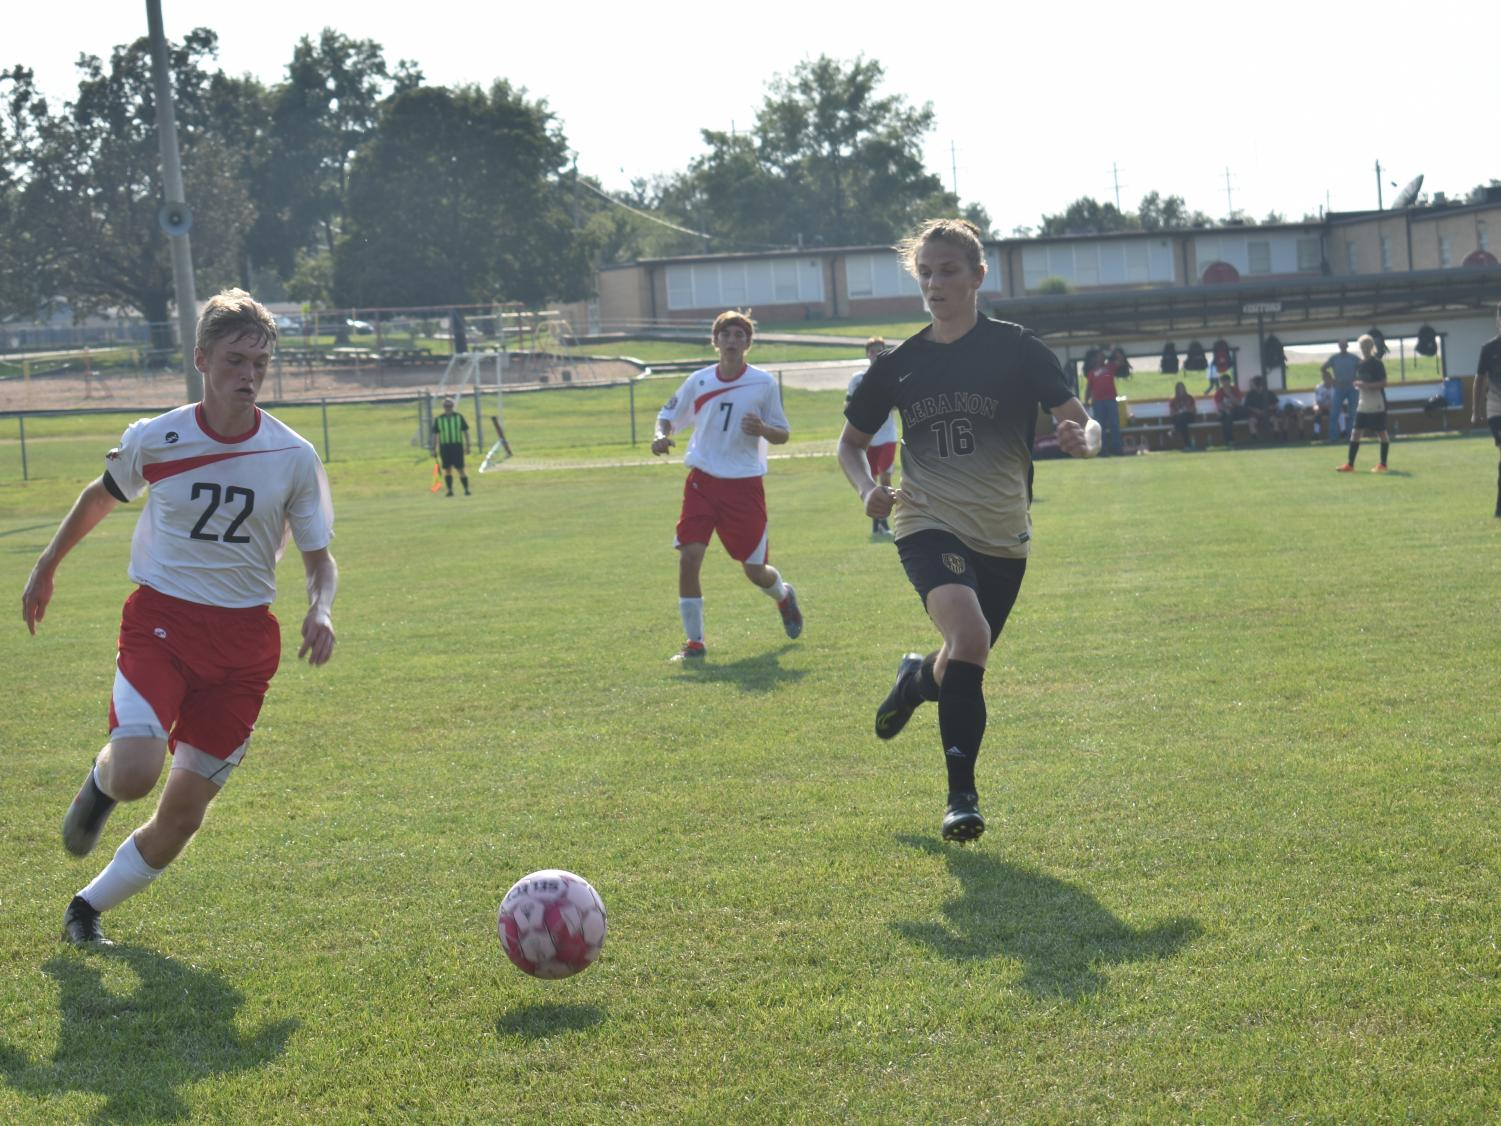 Senior Dillon Baker guards a player during the game against Dixon on September 6th. The Jackets won 6-0.